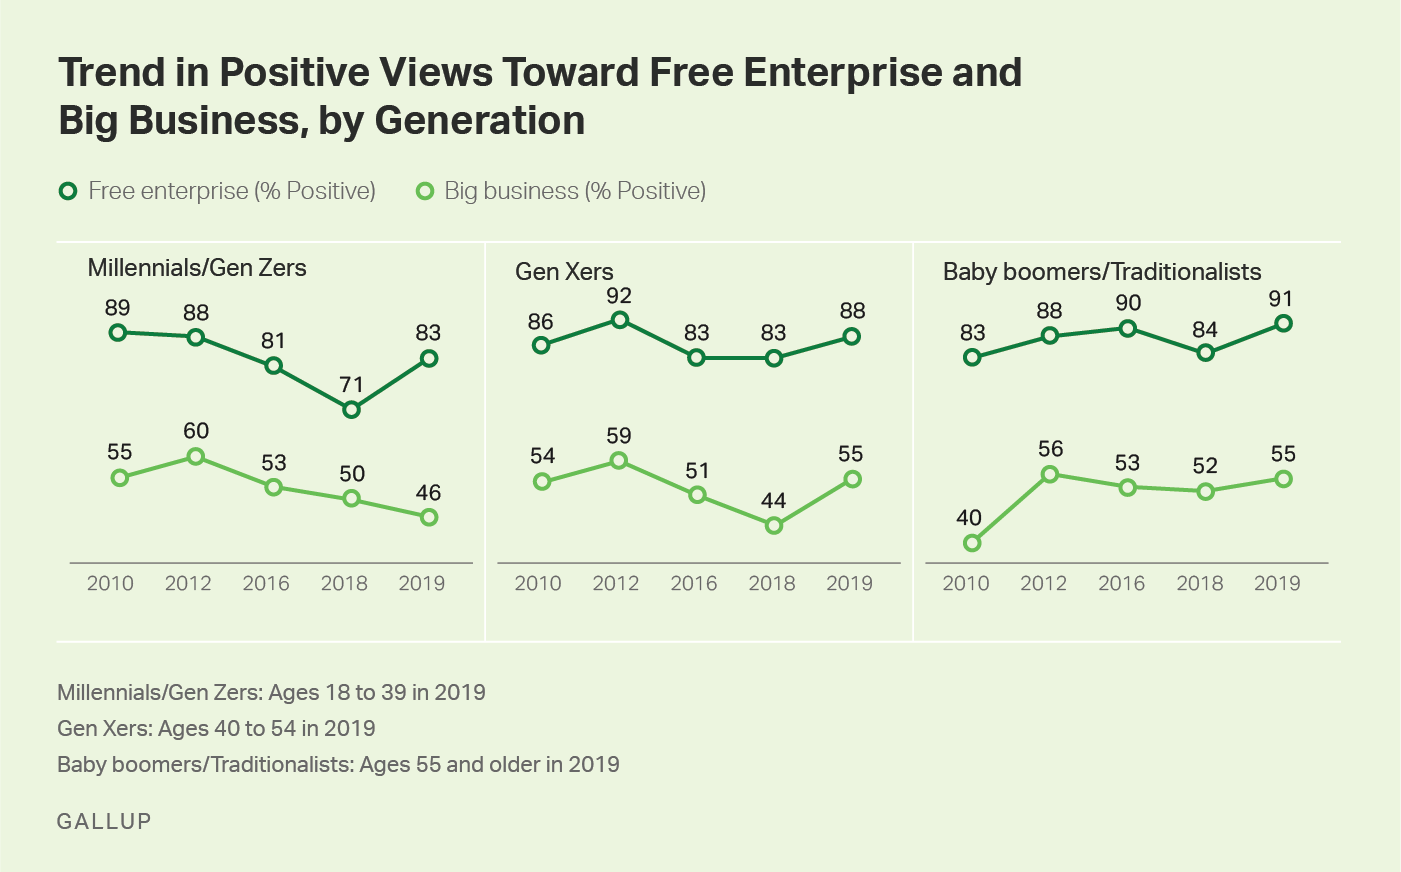 Three line graphs showing 2010-2019 trends in positive ratings for free enterprise and big business, by generational group.